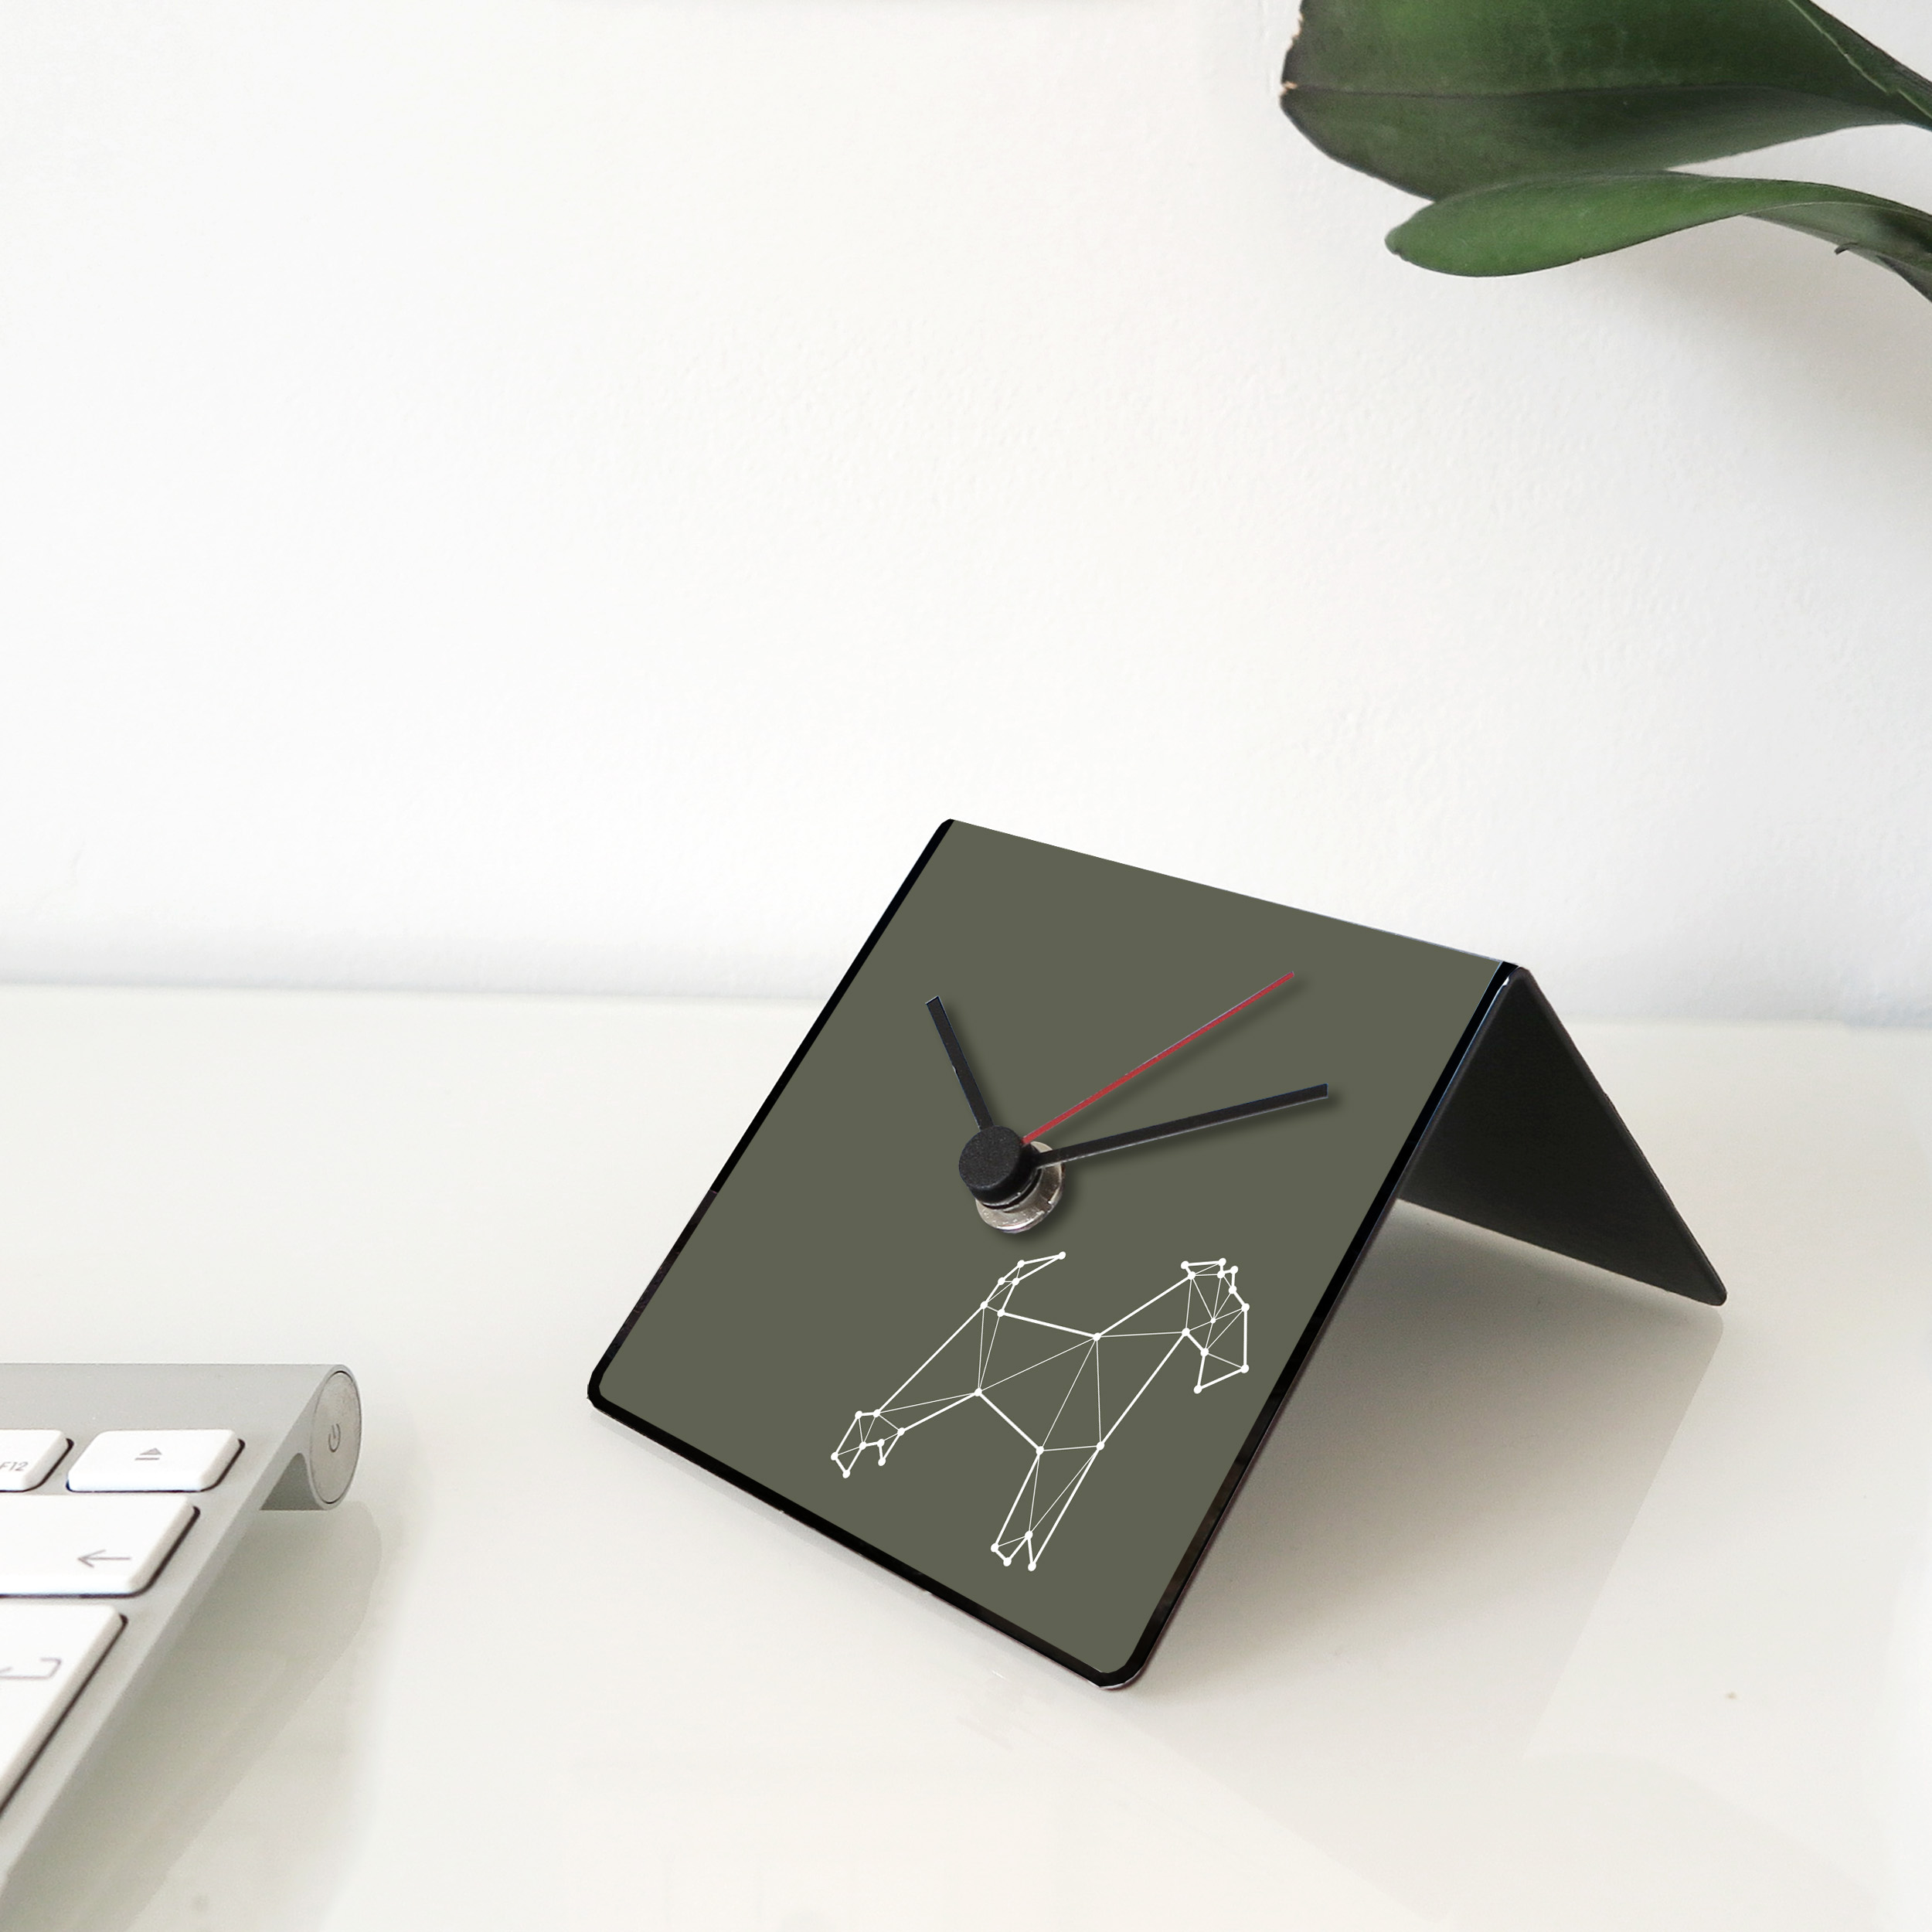 cane-totem-design-clock-mood